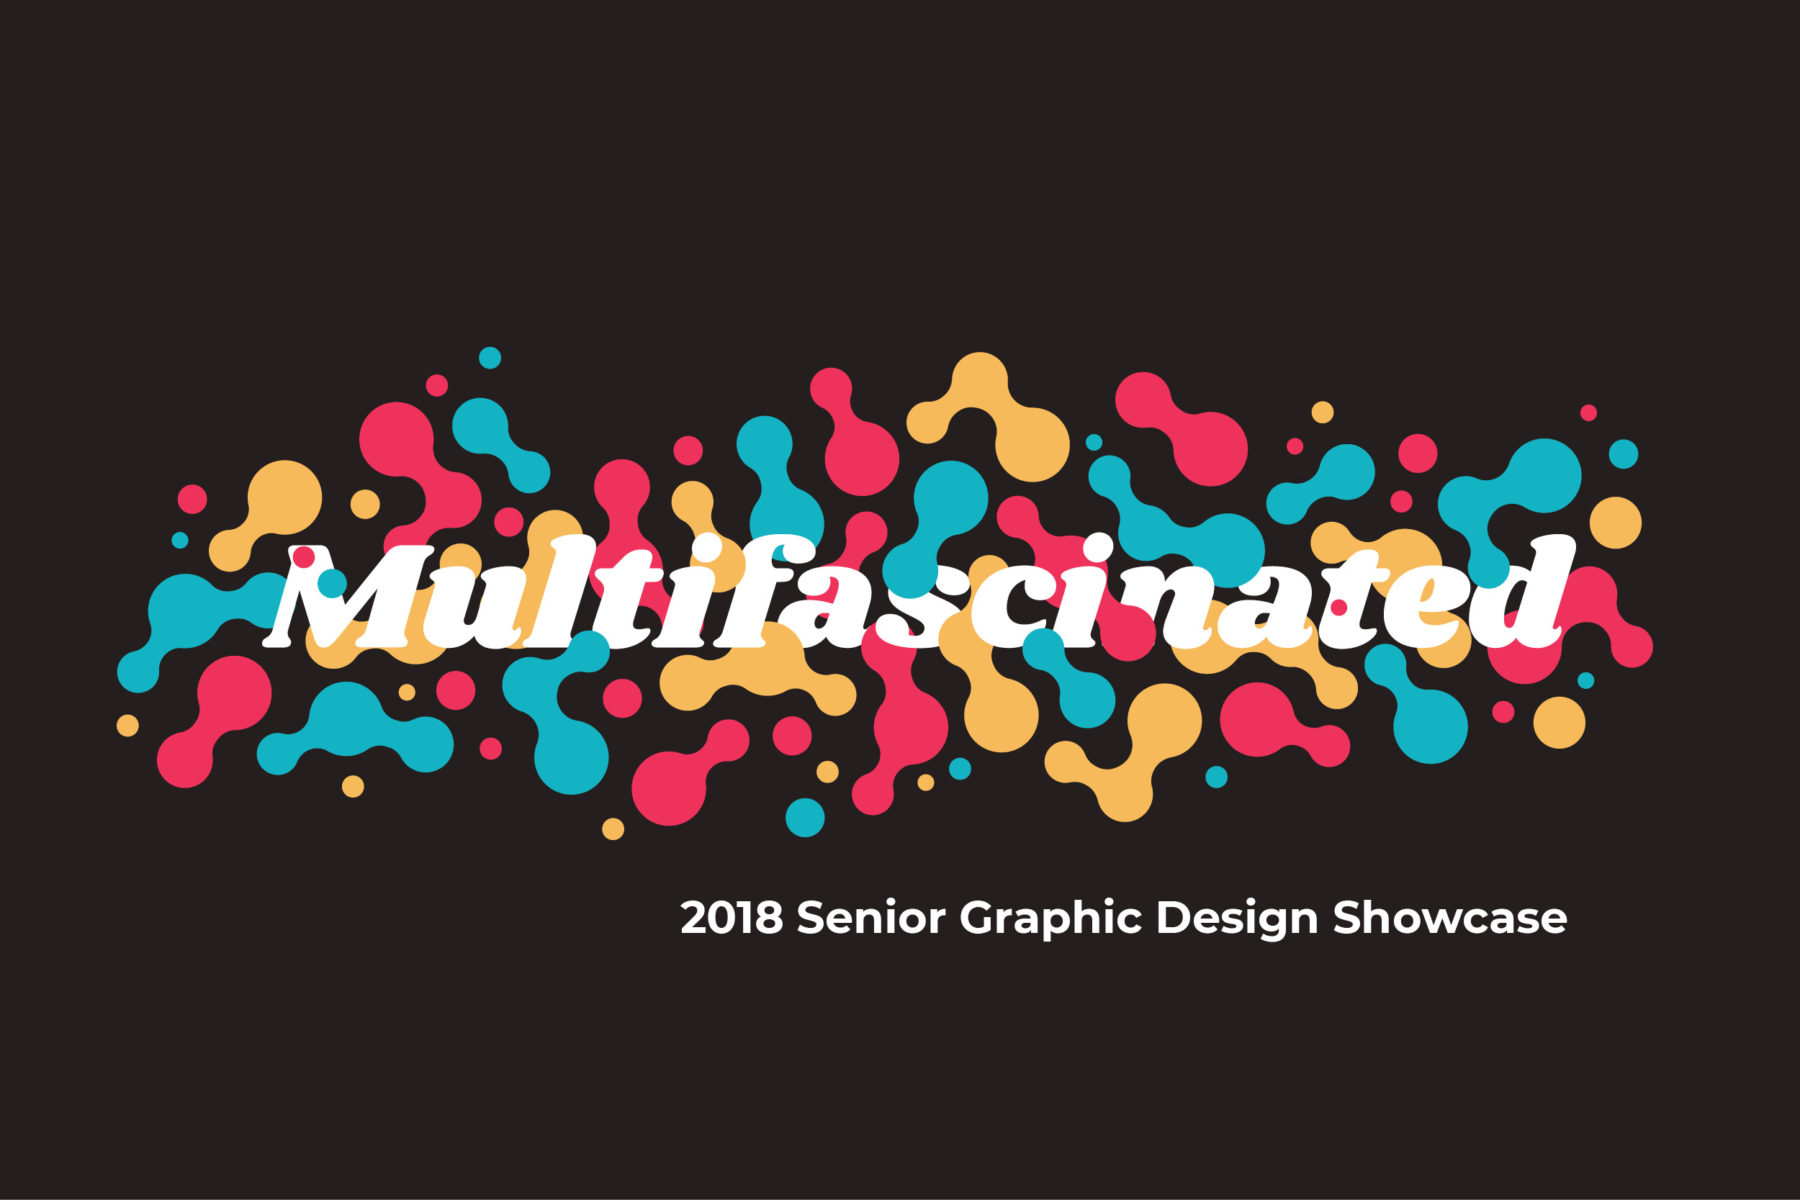 Multifascinated: 2018 Senior Graphic Design Showcase